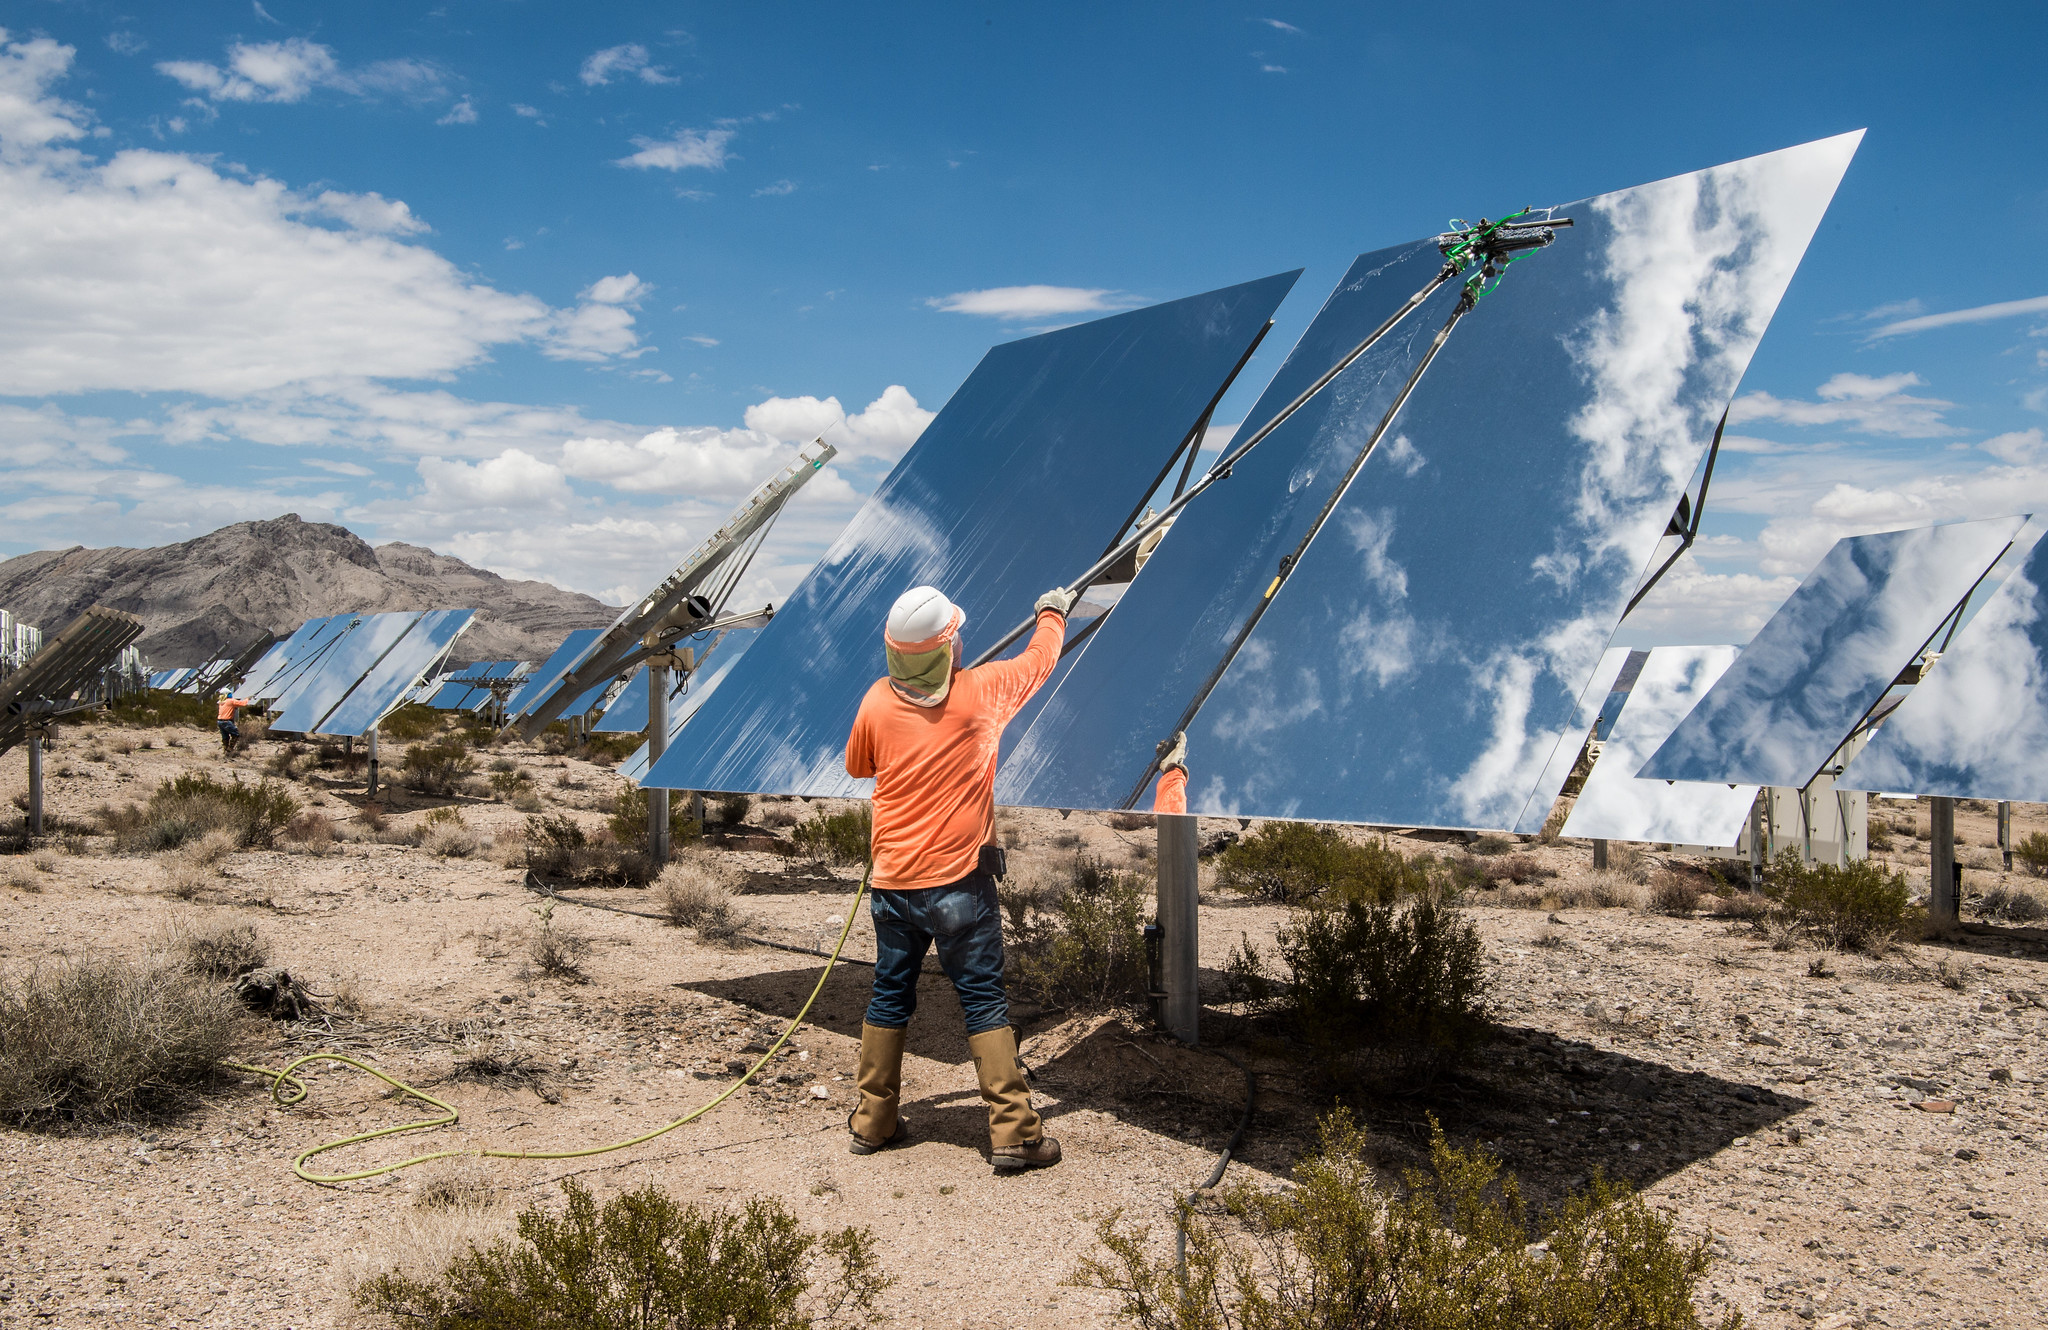 Contracted workers clean Heliostats at the Ivanpah Solar Project, owned by NRG Energy, Bright Source Energy,Bechtel and Google